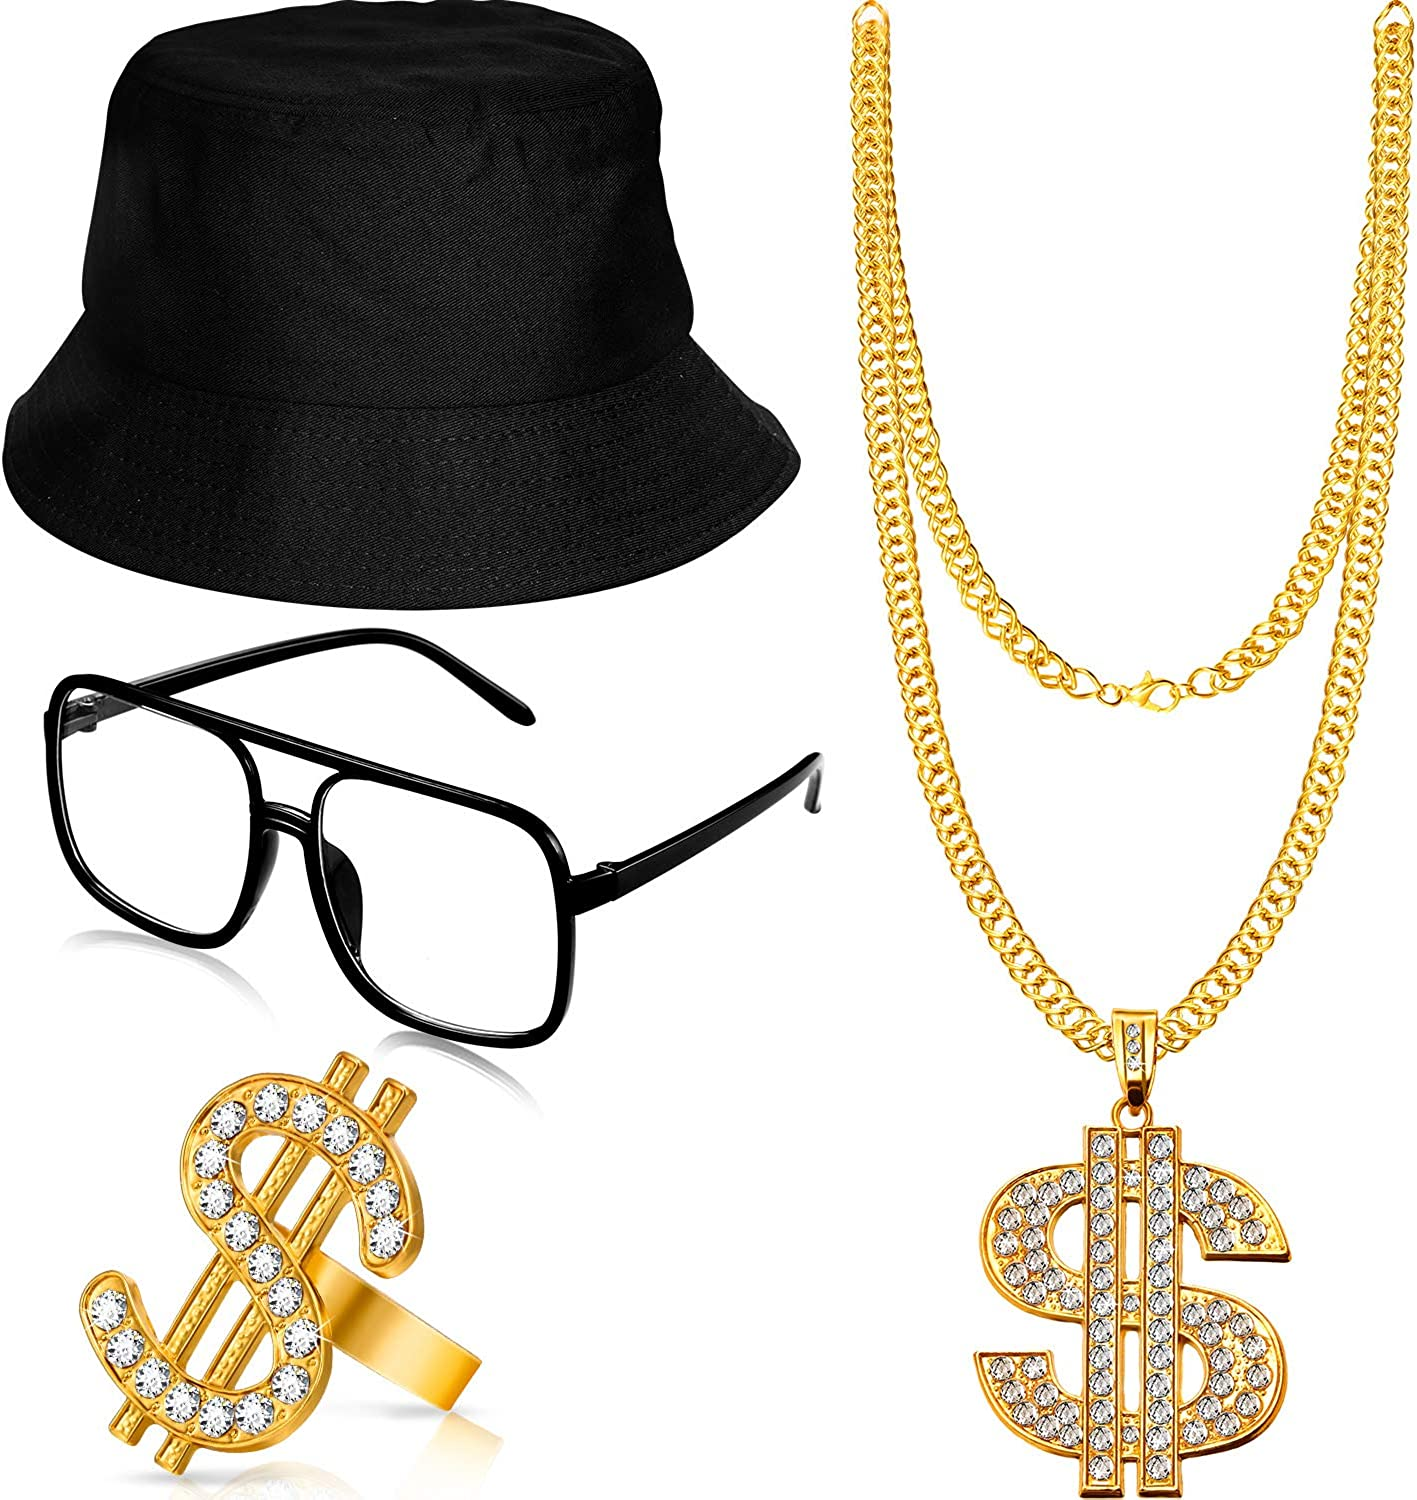 Hip Hop Costume Kit Bucket Hat 90 80s Super popular specialty store Gold Sunglasses Ranking TOP3 Chain Ring